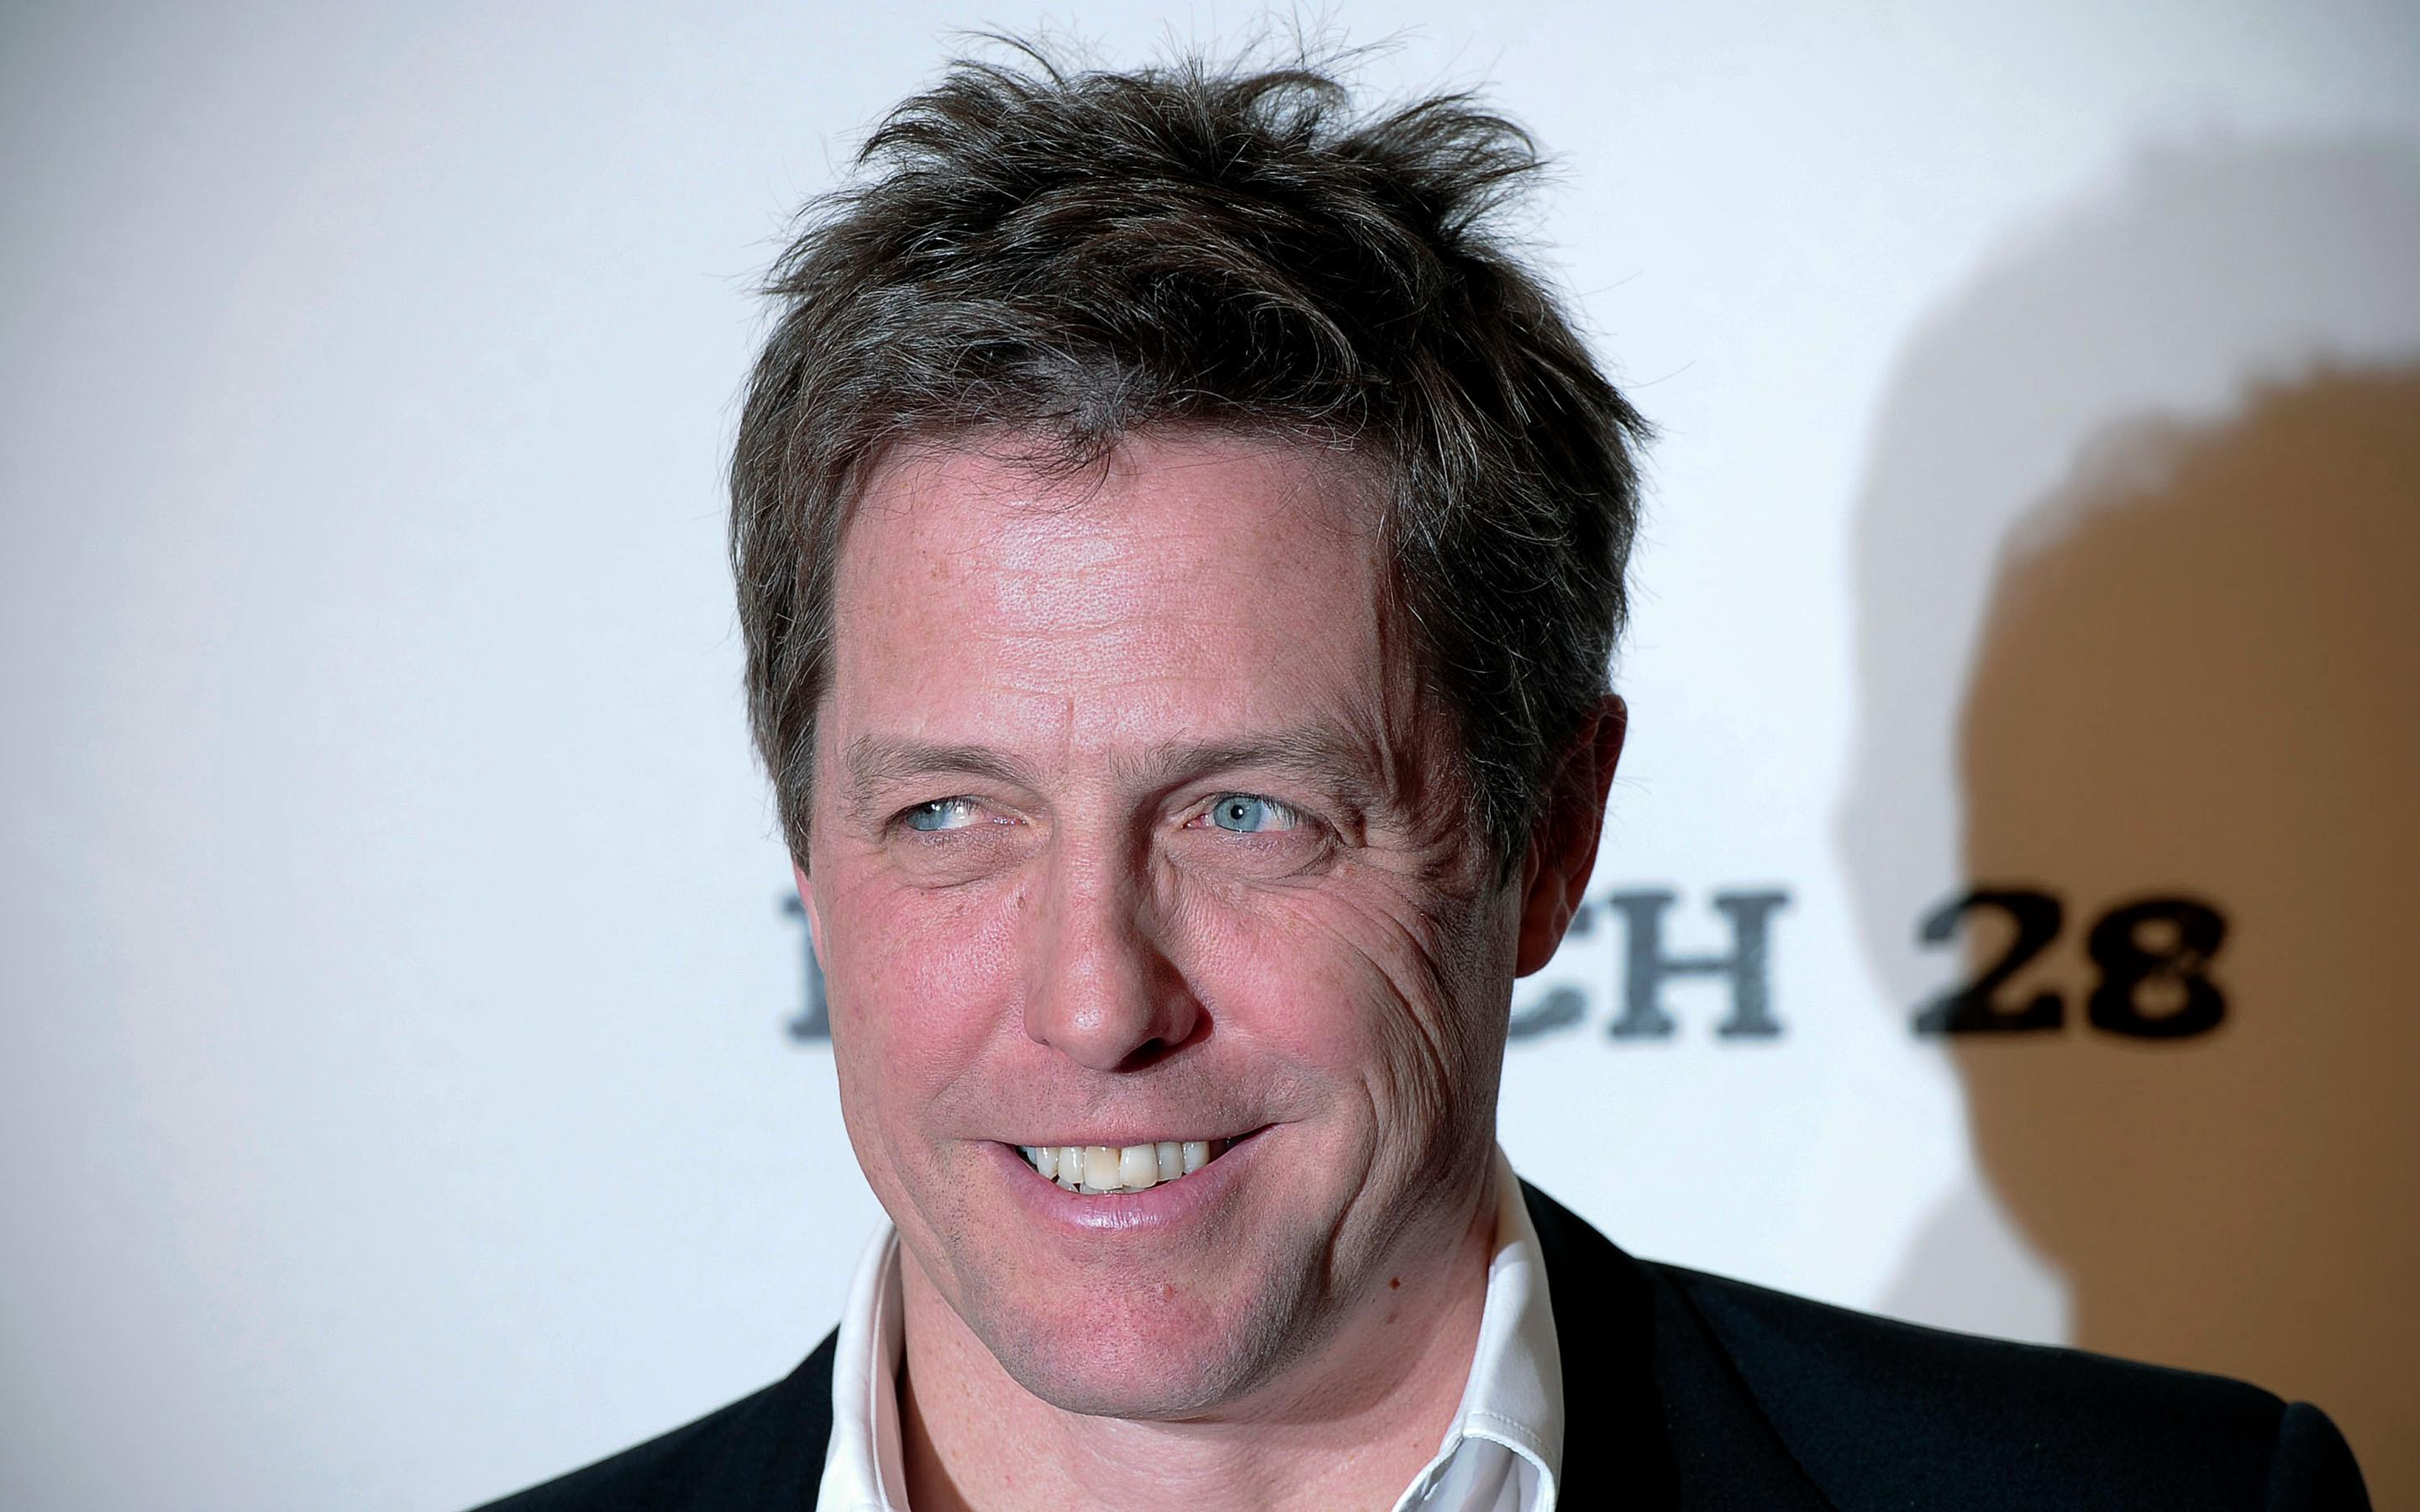 hugh grant celebrity wallpaper background 55557